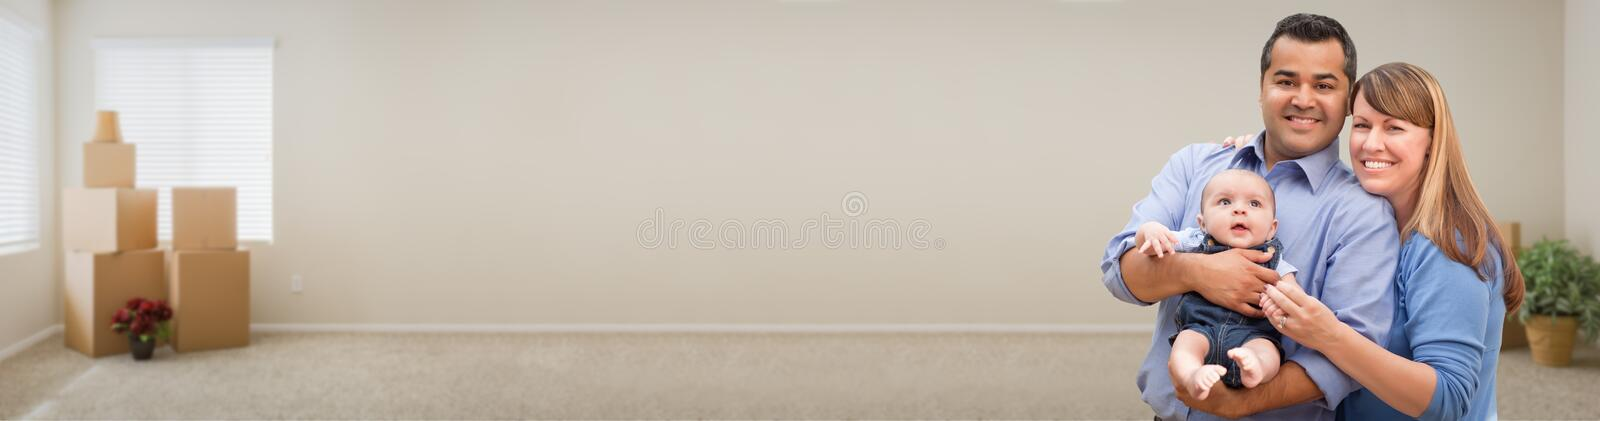 Young Mixed Race Family Inside Room with Boxes Banner. Mixed Race Family Inside Room with Boxes Banner royalty free stock photos